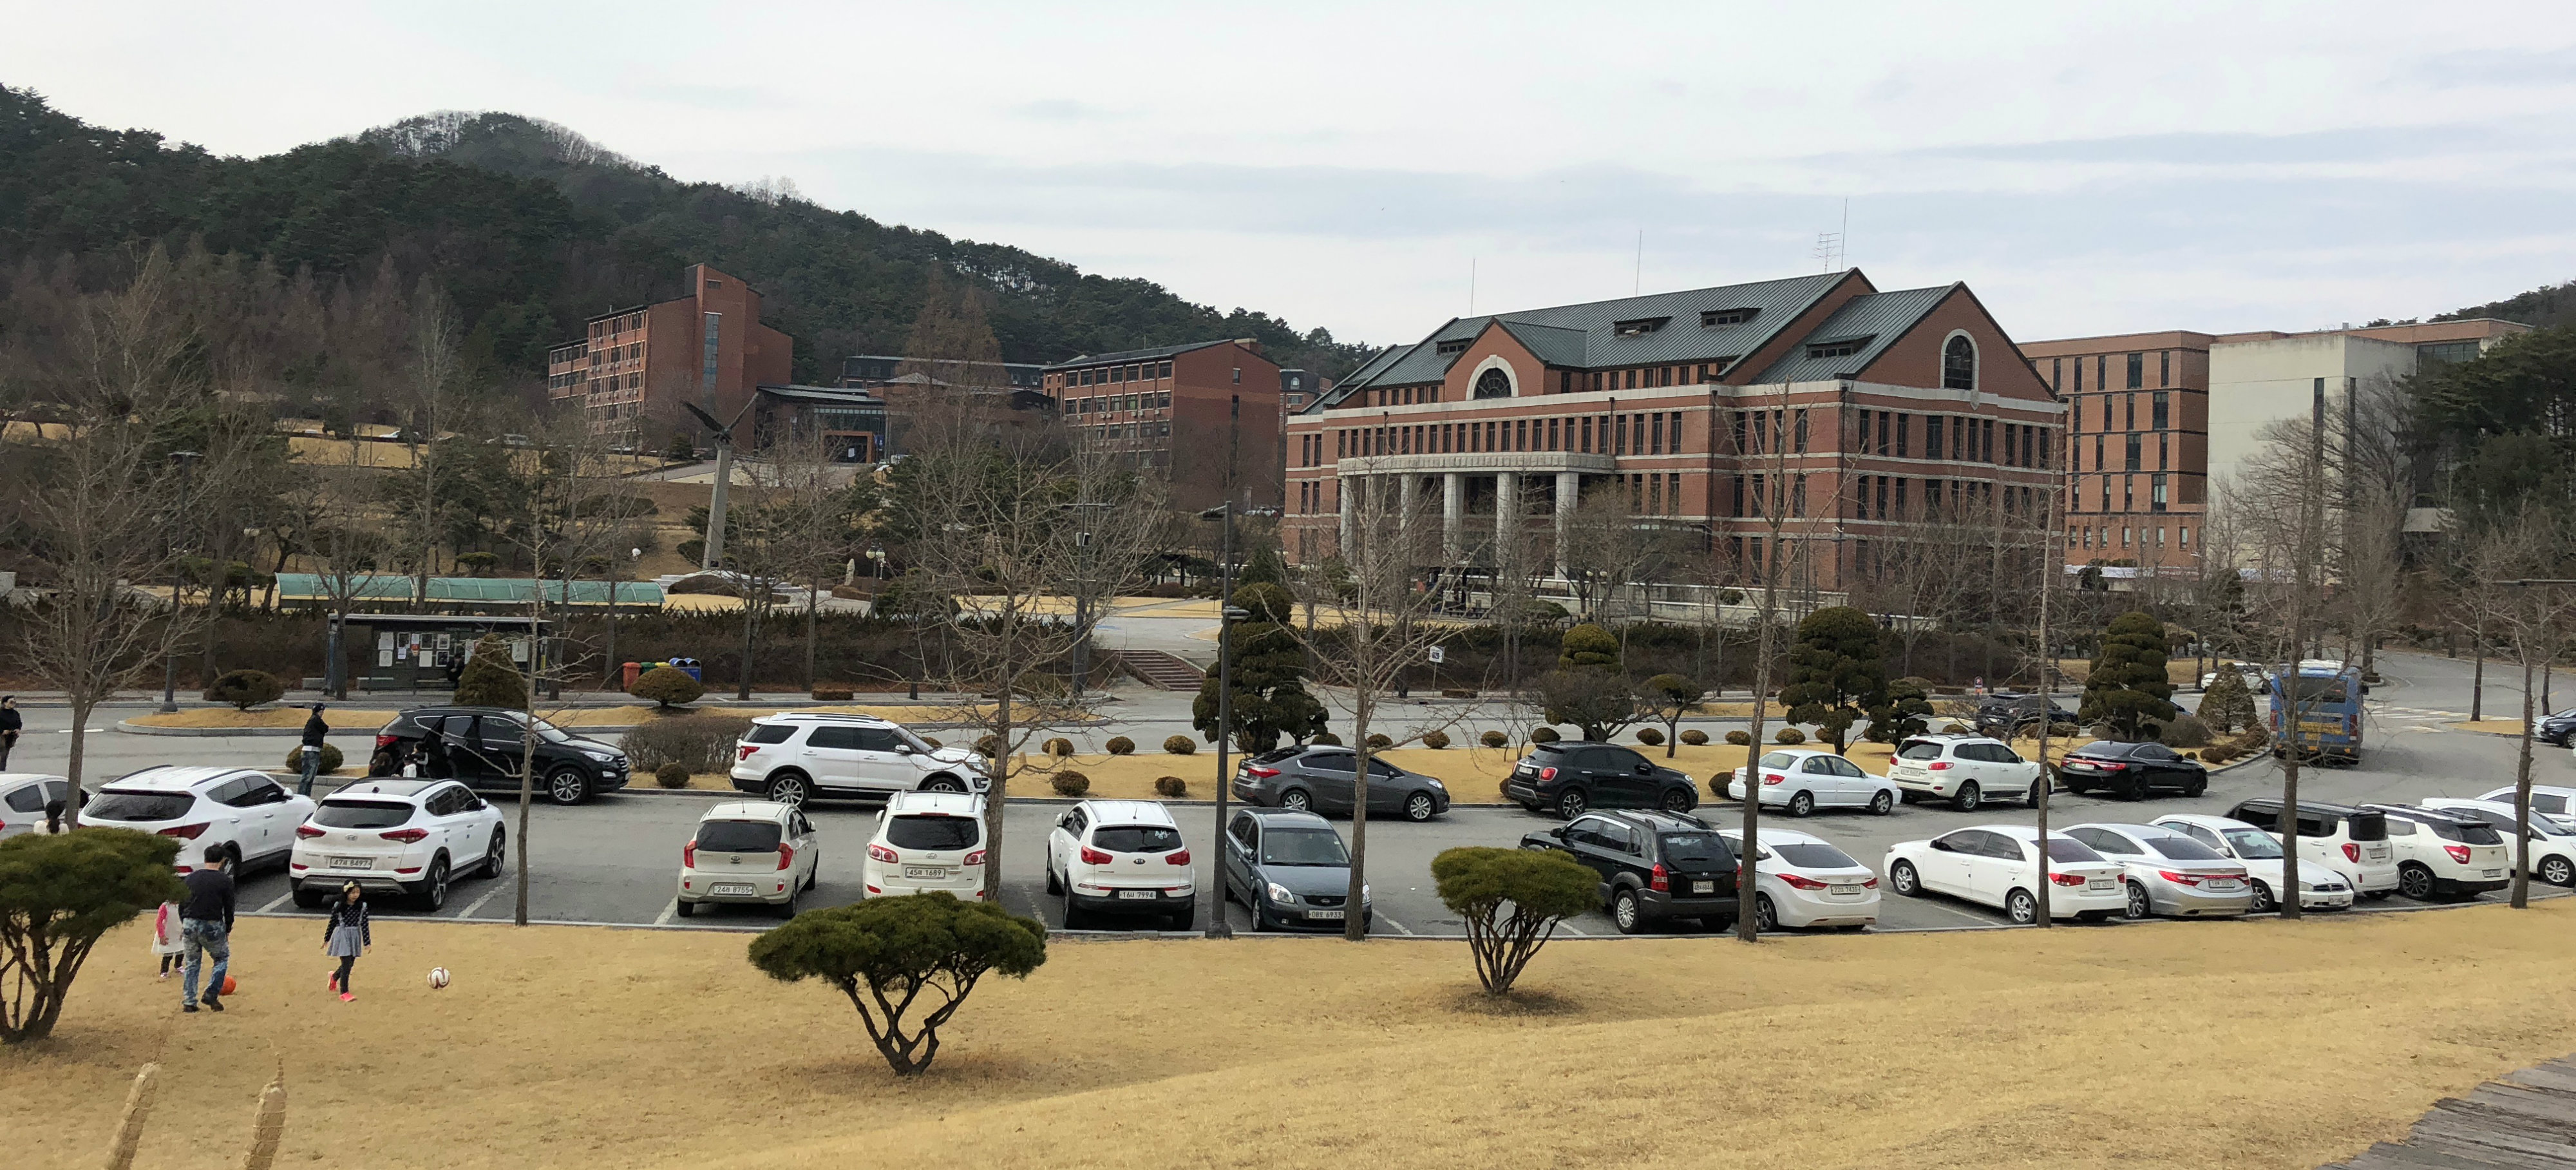 Yonsei University campus